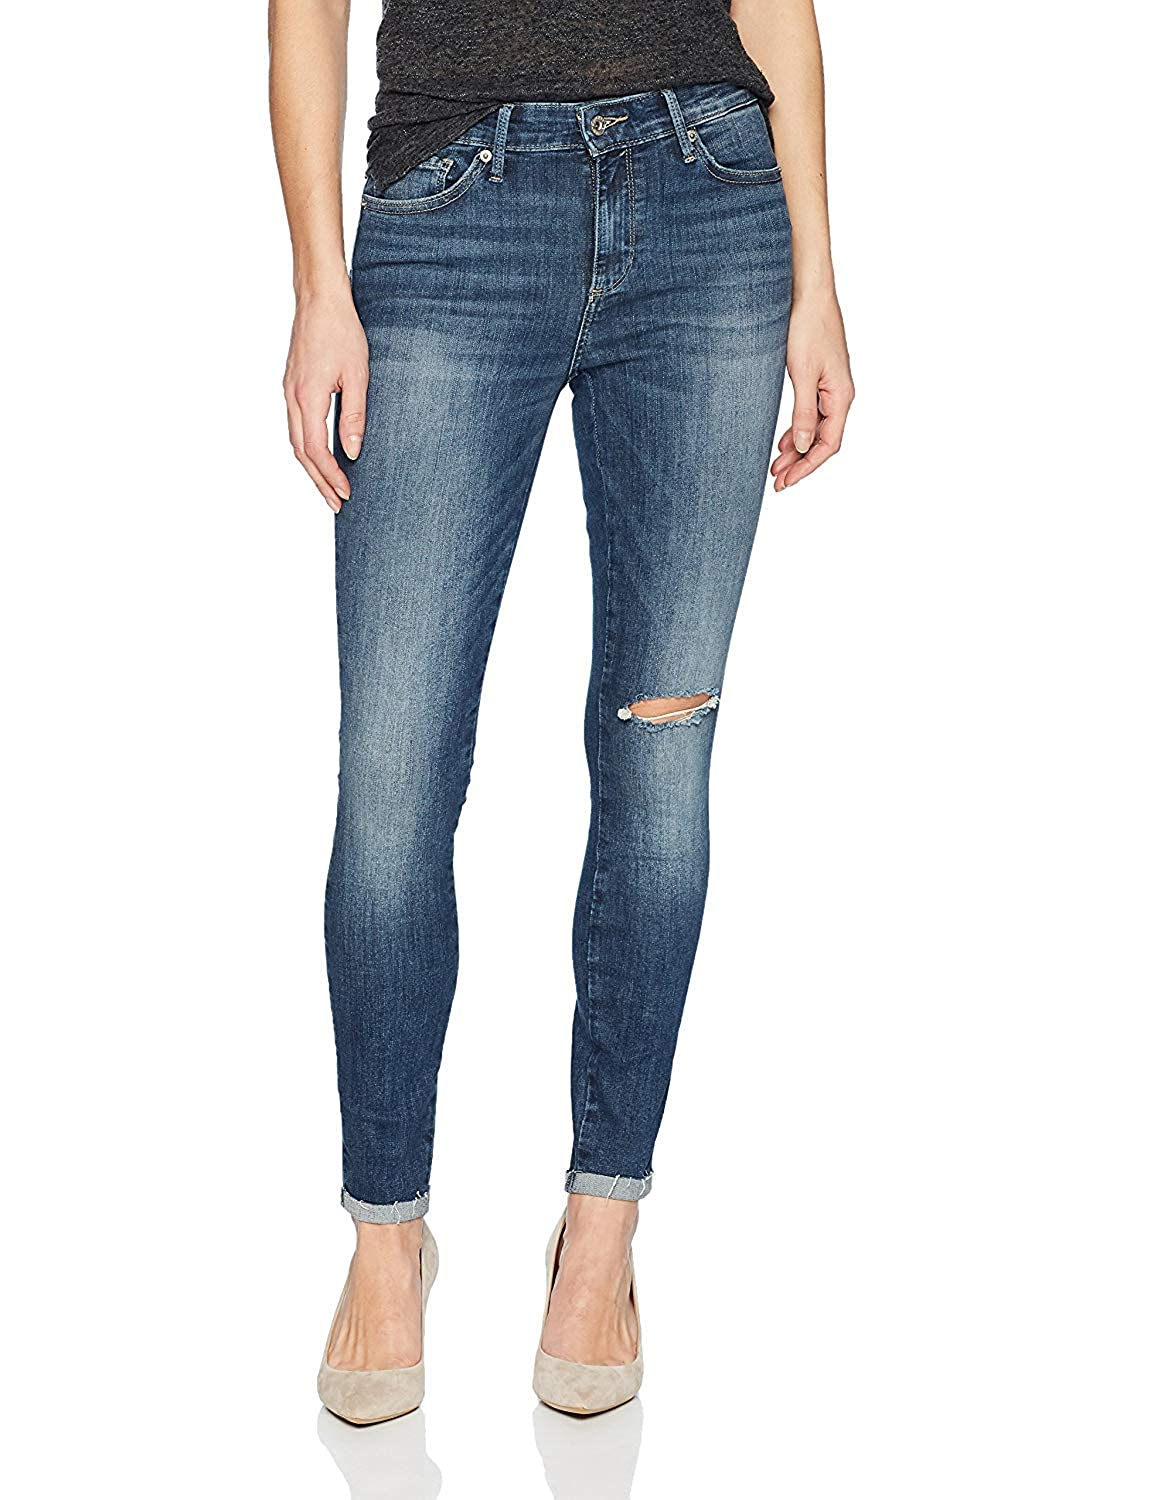 Lucky Brand Womens Mid Rise Ava Legging Jean in Vaguero